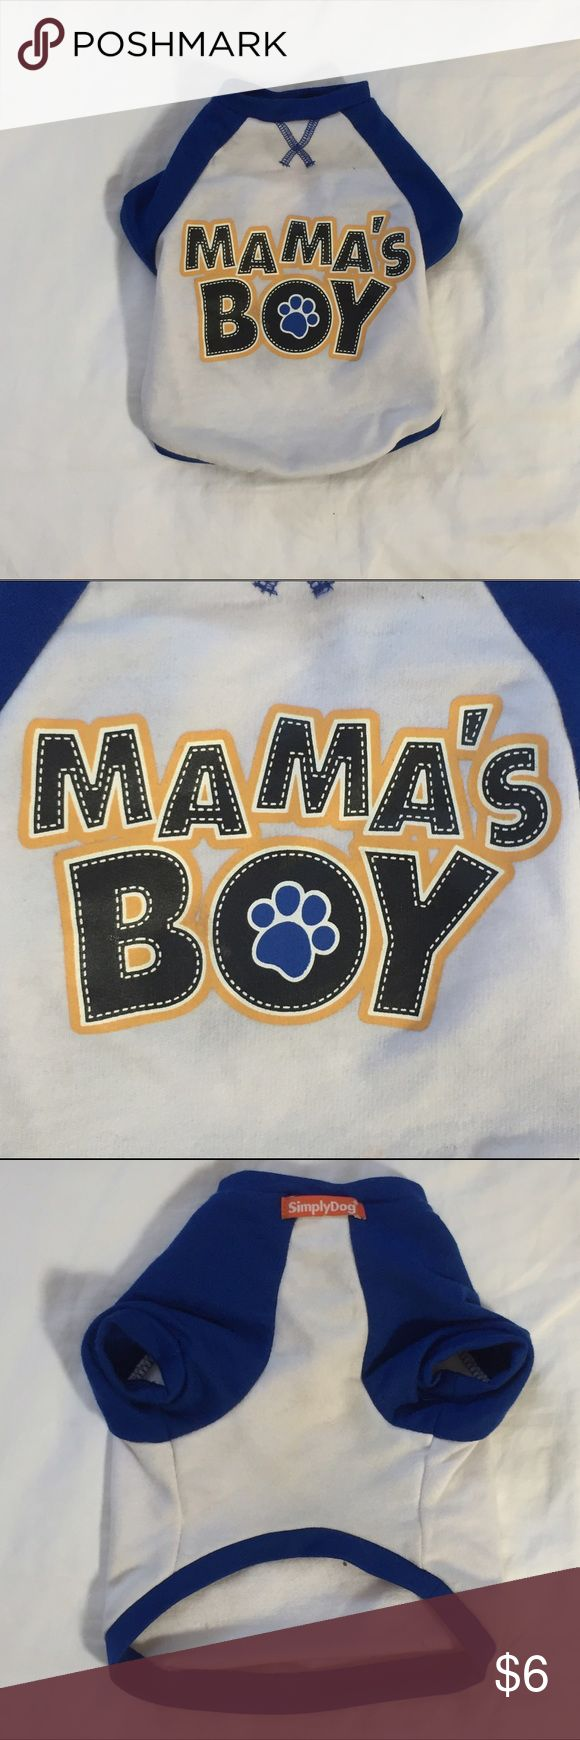 """🐾 Simply Dog T-Shirt 🐾 Puppies need fashion too! Small baseball tee for a dog less than 10 lbs. White with blue sleeves and """"Mama's Boy"""" graphic print. This is like new because it was purchased for a pup that thinks he's a wolf and refuses to wear clothes! 🐺 Simply Dog Other"""